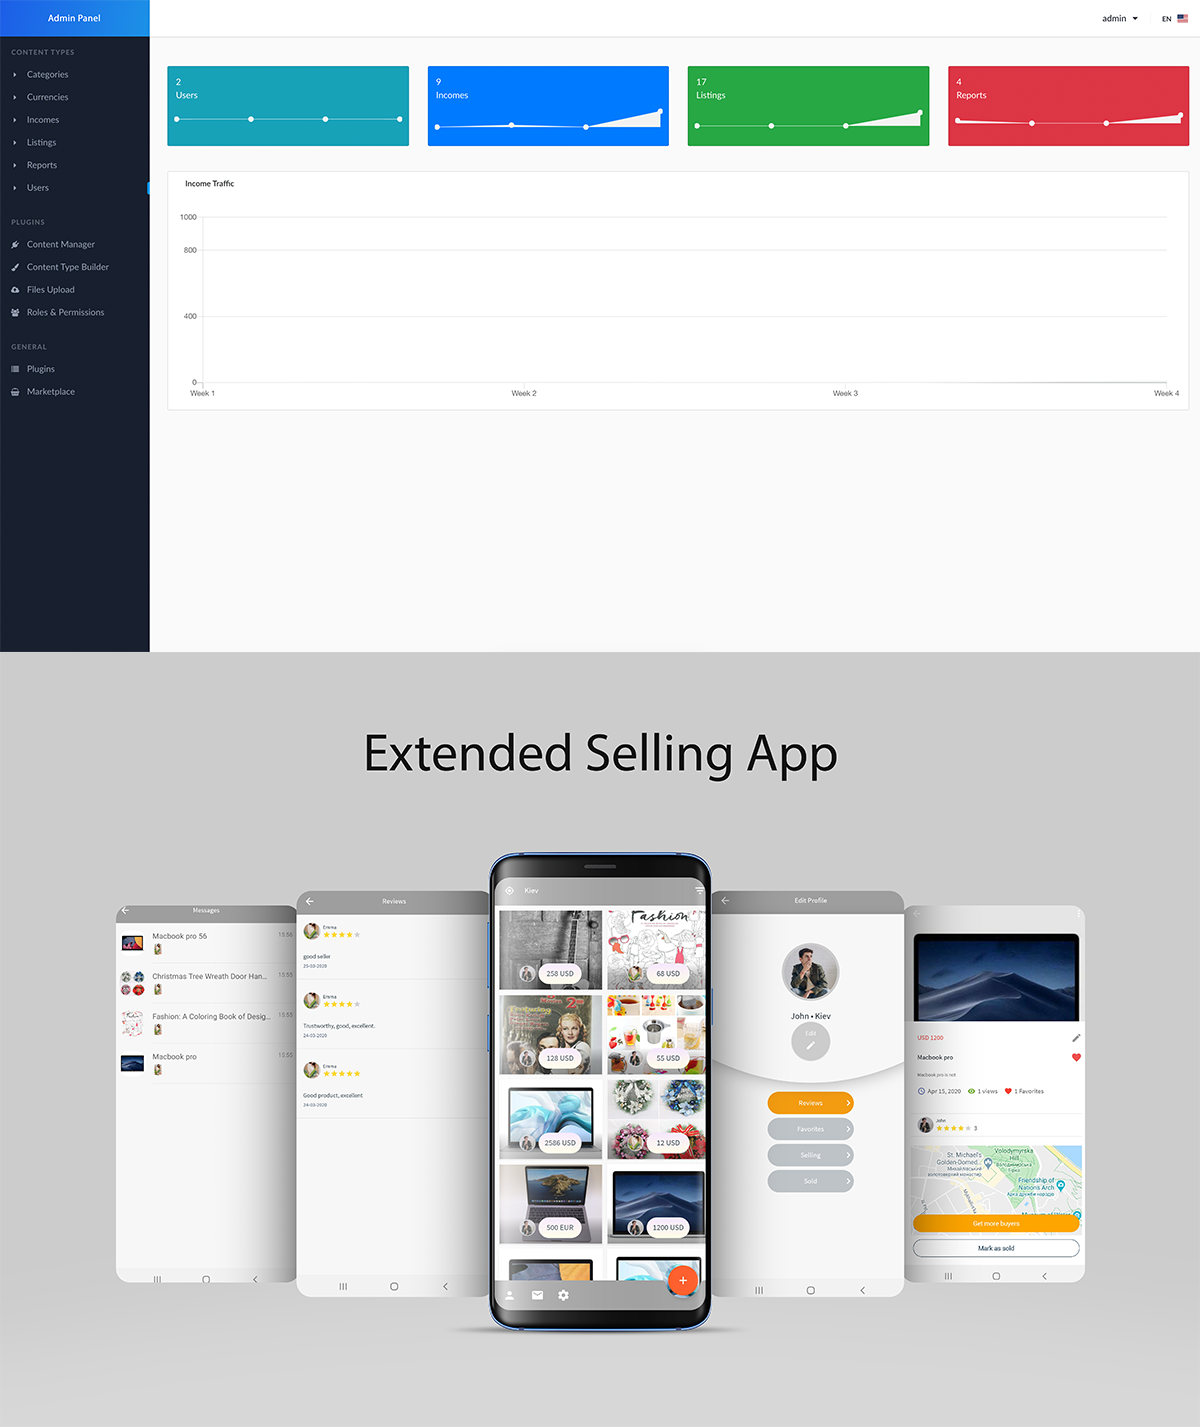 Extended Selling App